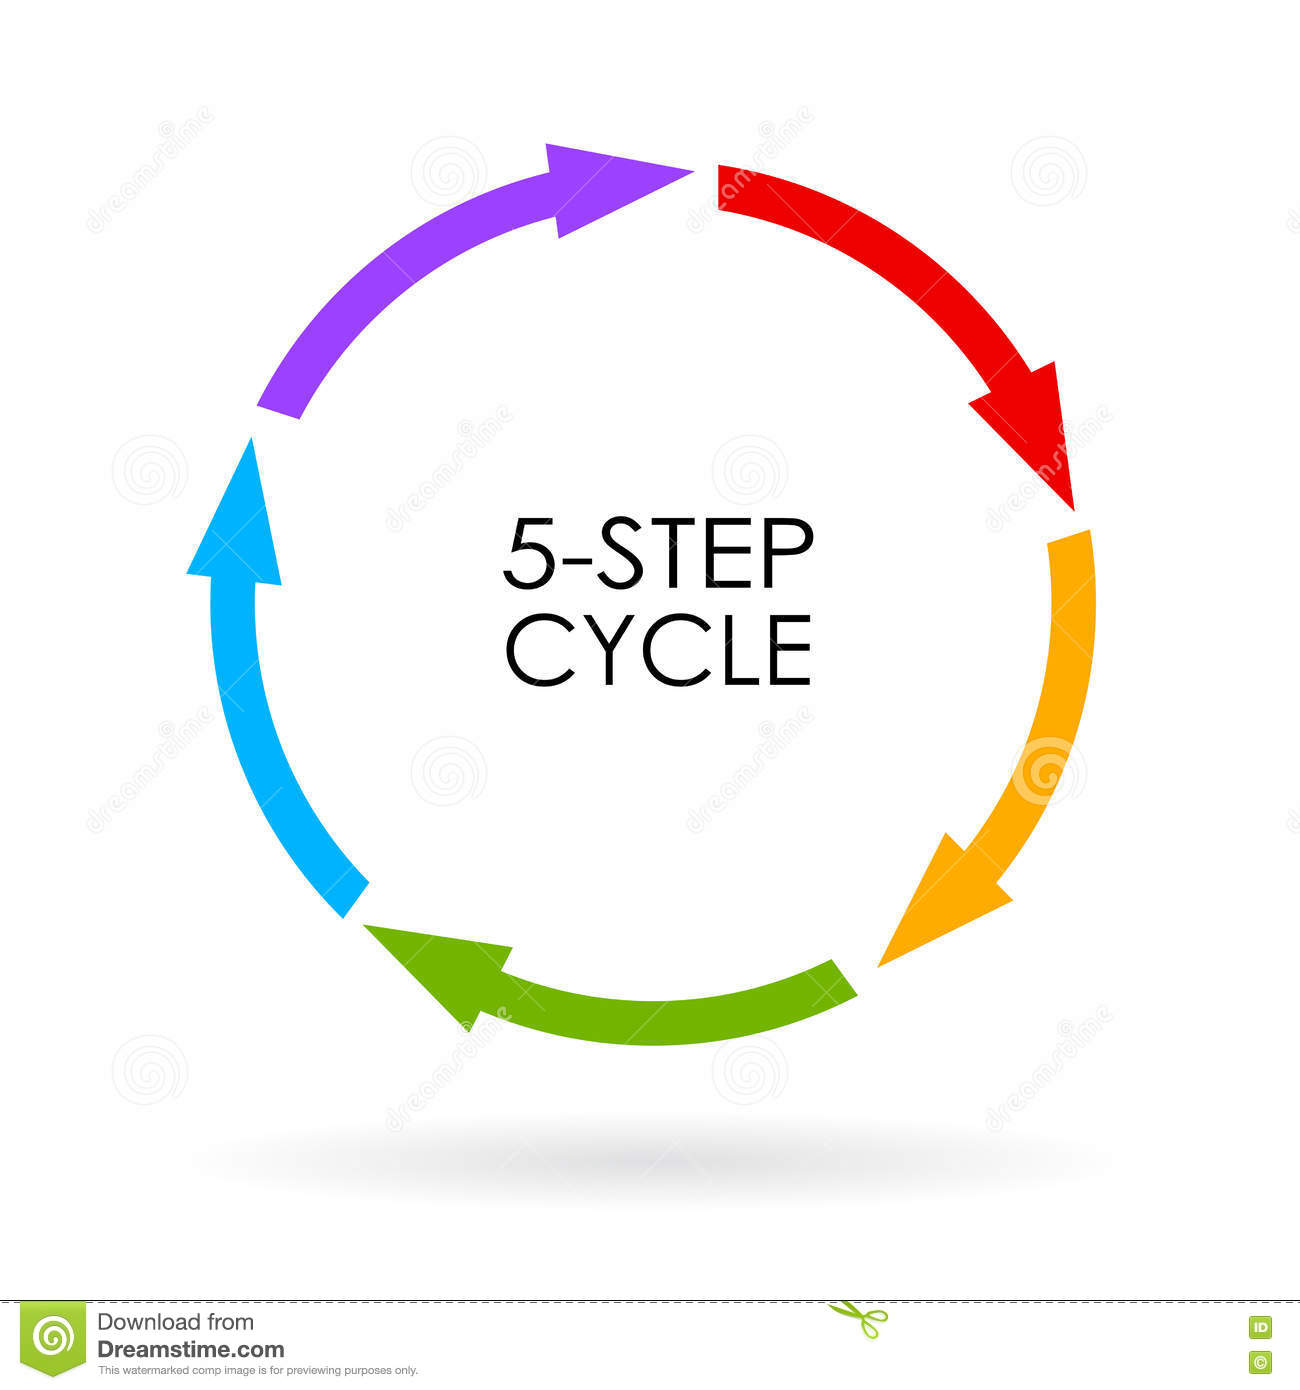 Process cycling arrow by arrow royalty free stock images image - 5 Step Cycle Diagram Royalty Free Stock Photography